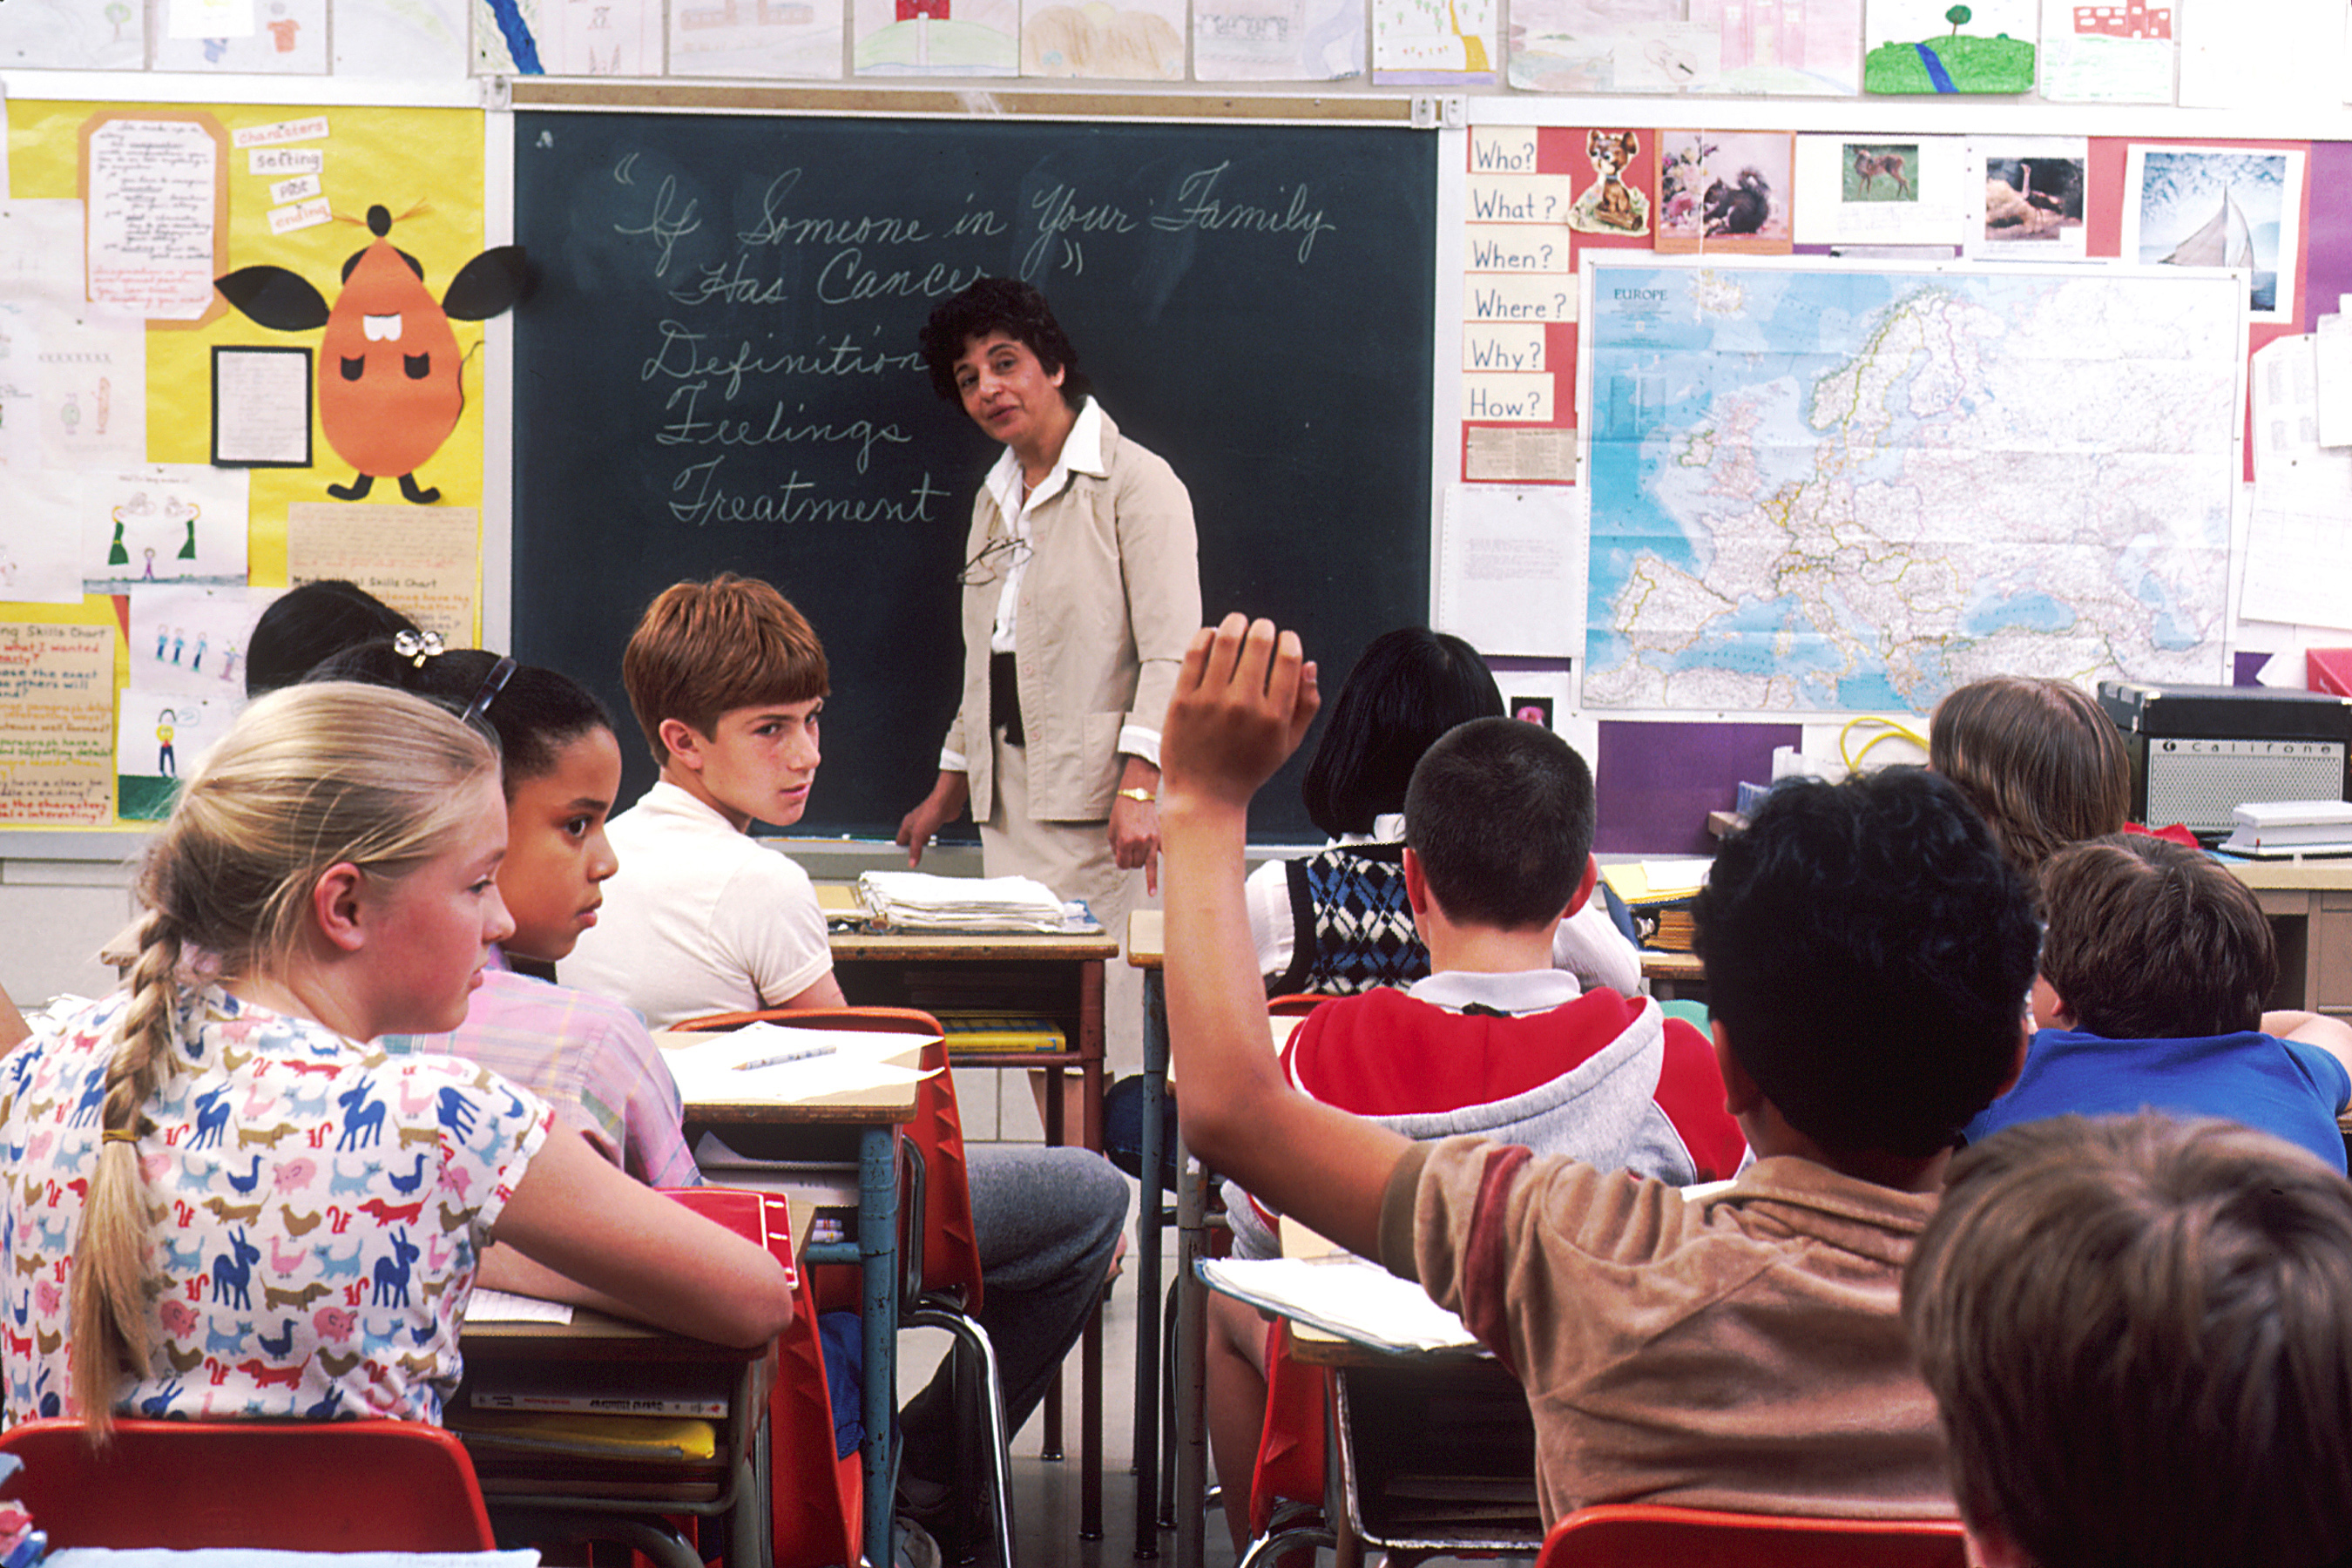 Image of children in a traditional classroom facing the front in desk and chairs with one boy raising hand and teacher looking at him.